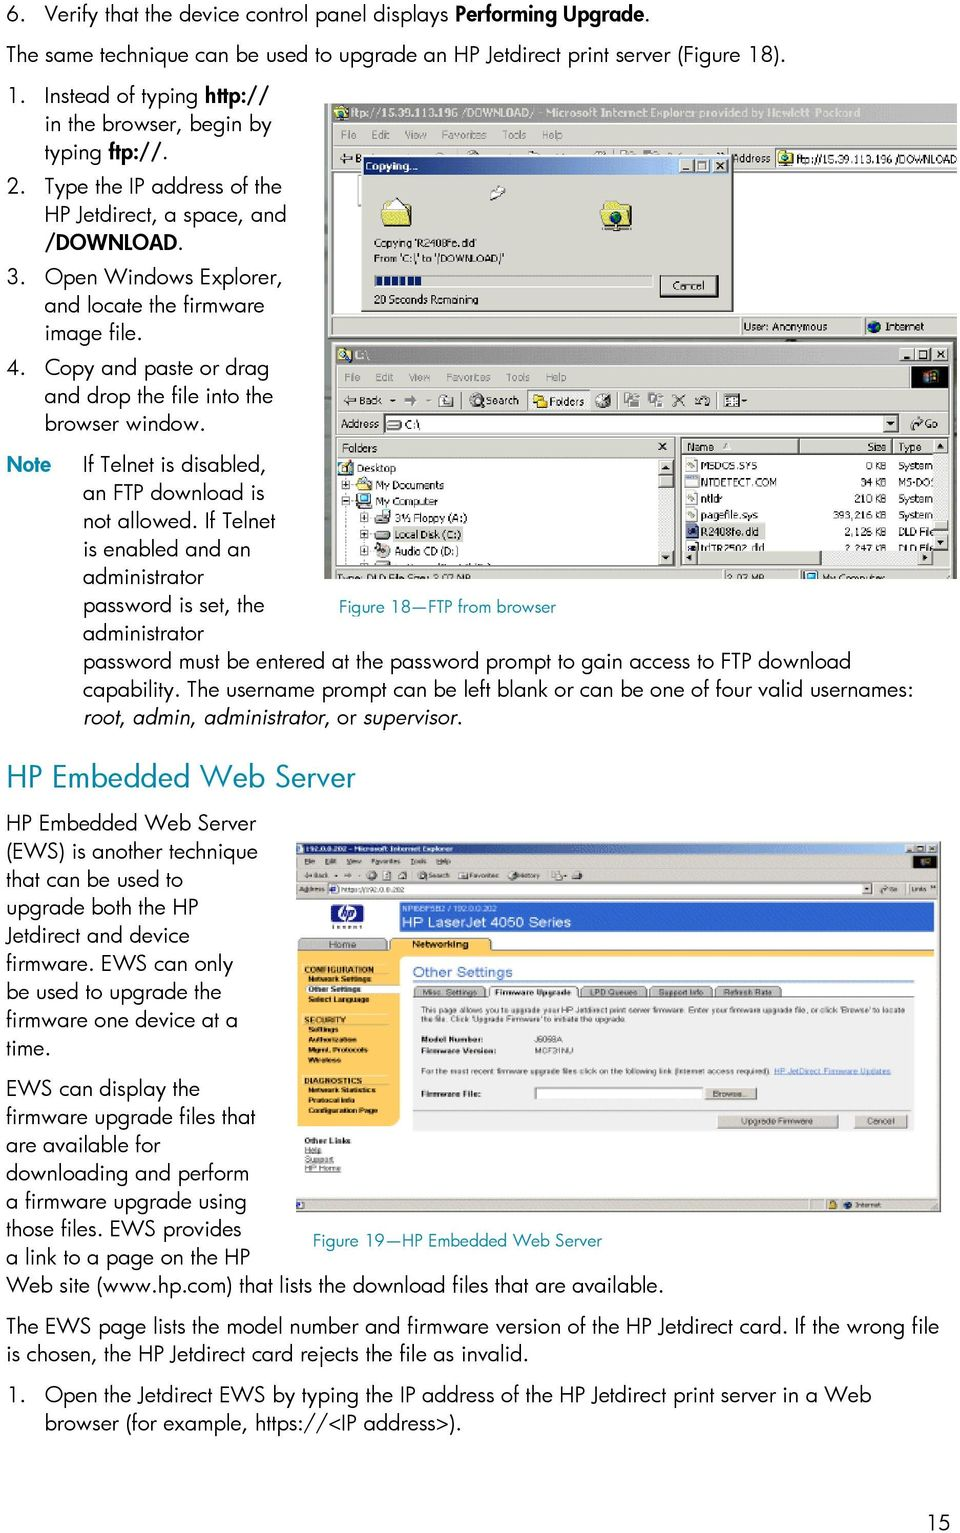 UPGRADING FIRMWARE CONTENTS  using HP Web Jetadmin - PDF